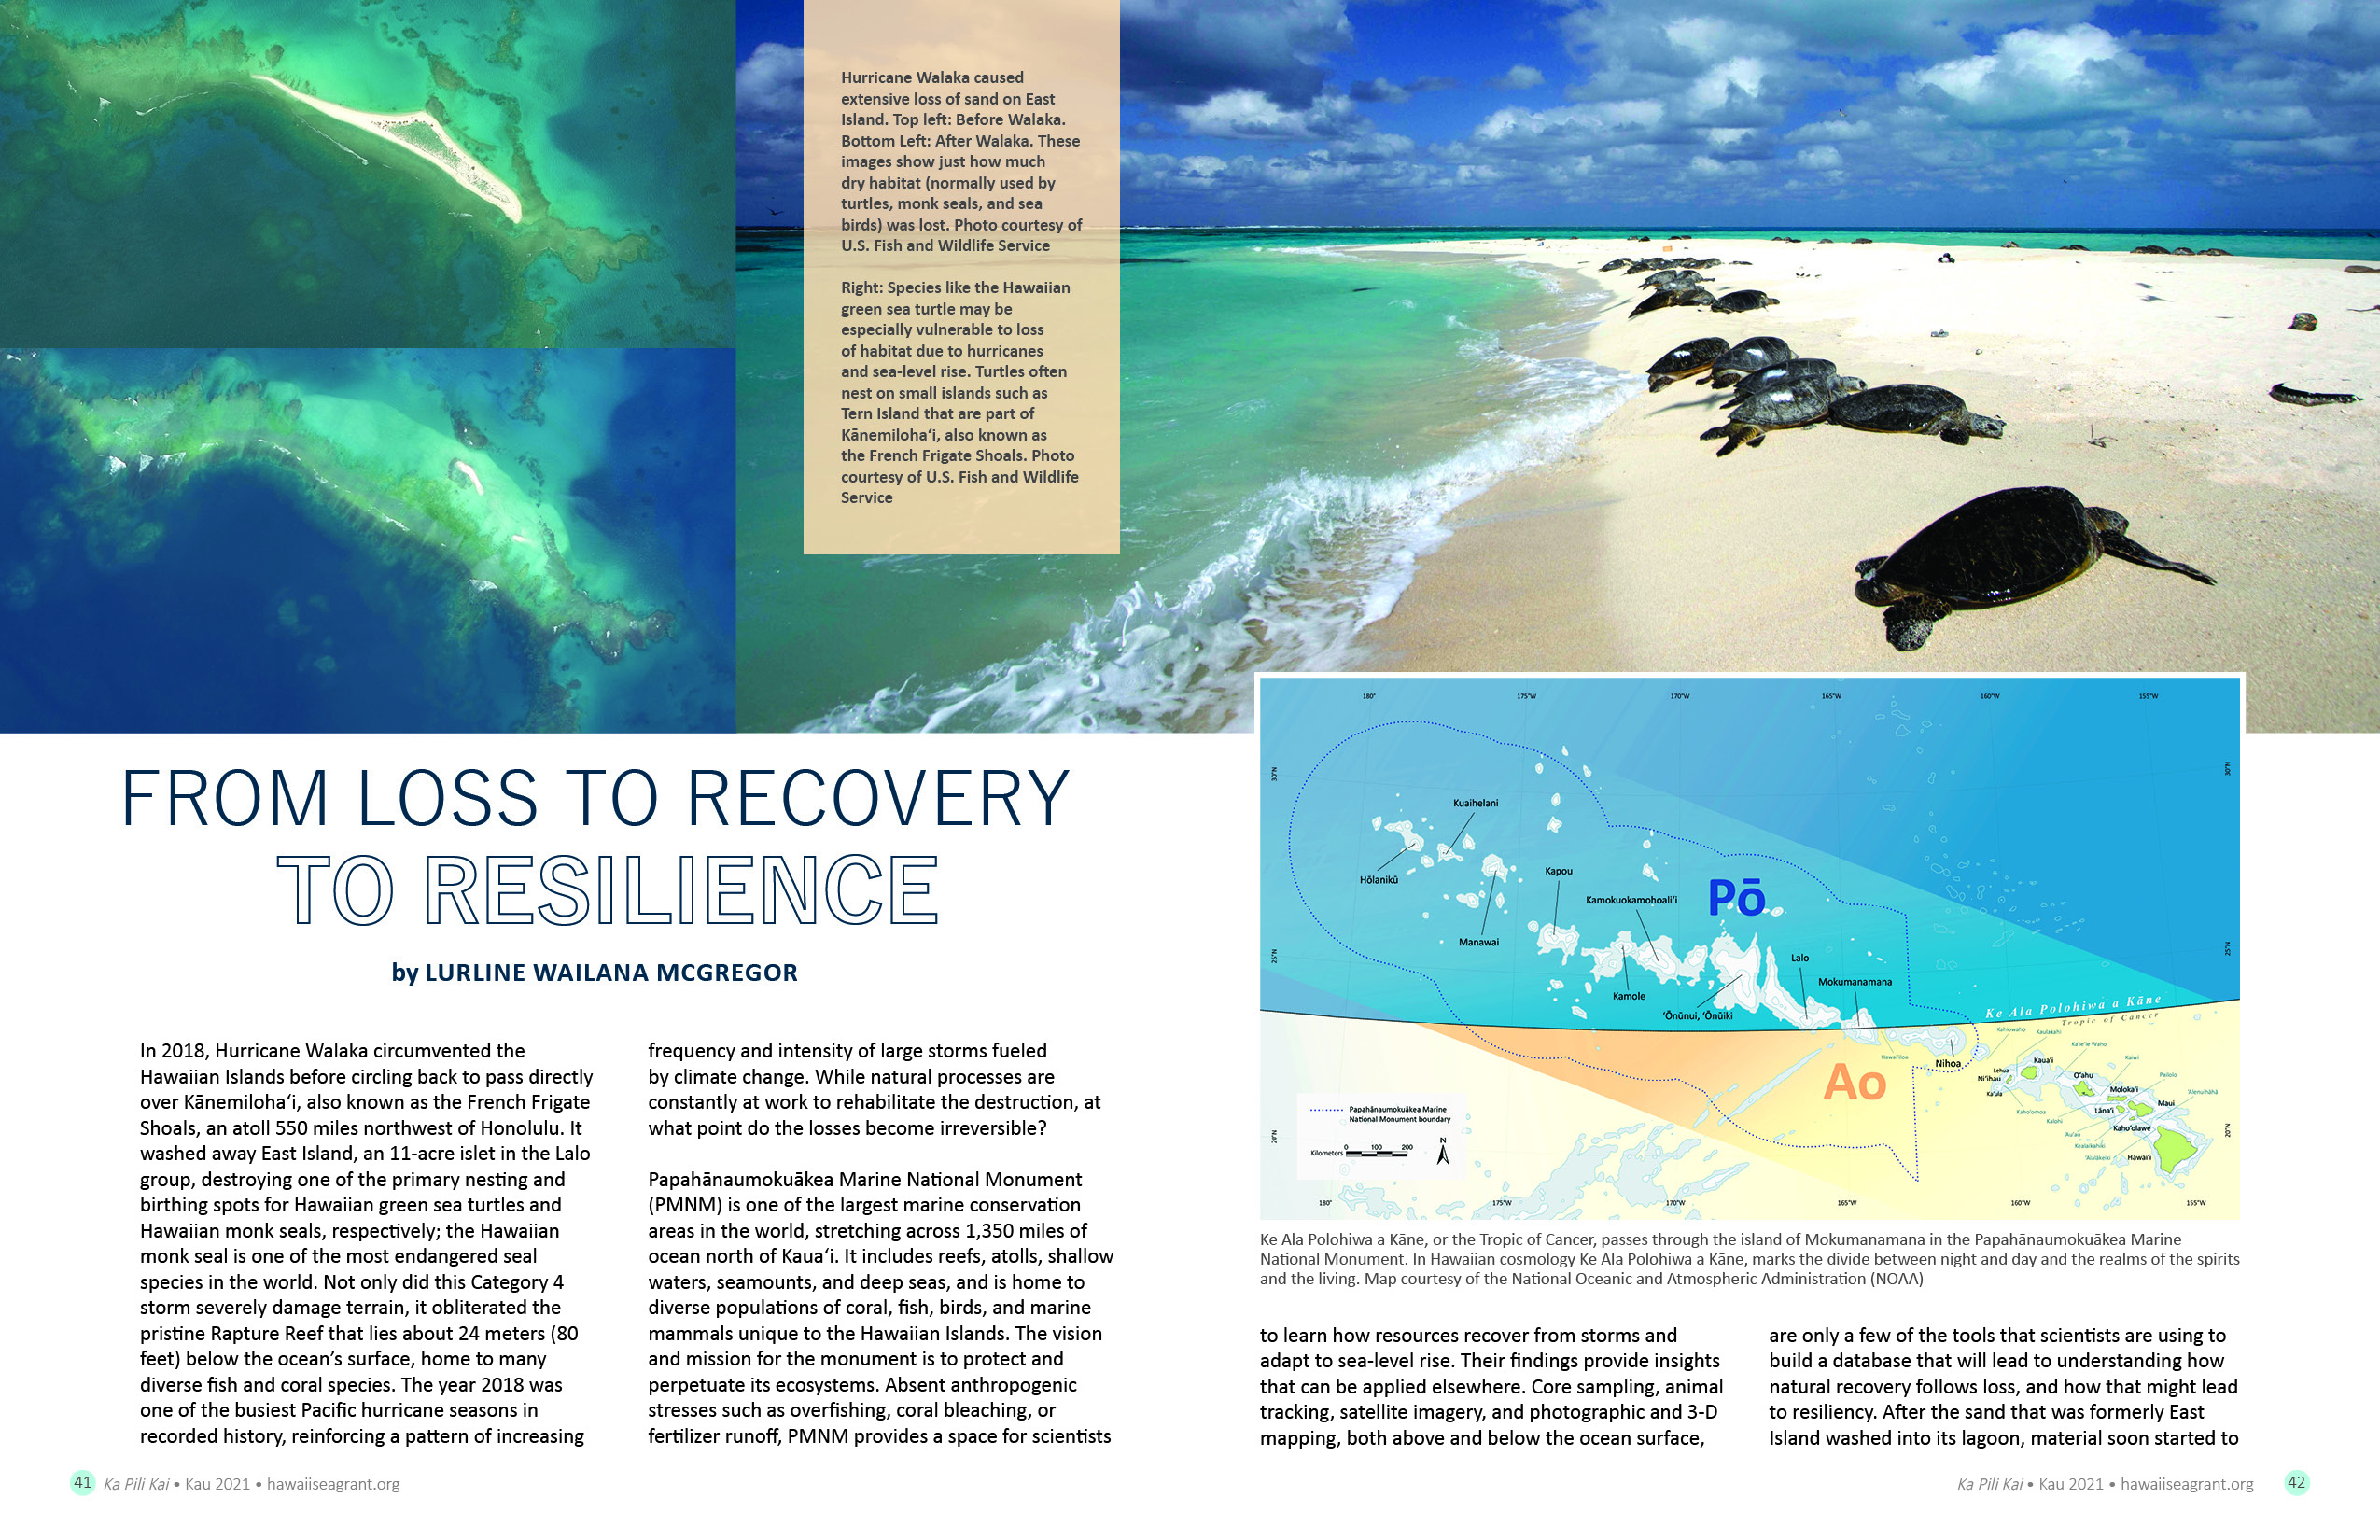 From Loss to Recovery to Resilience